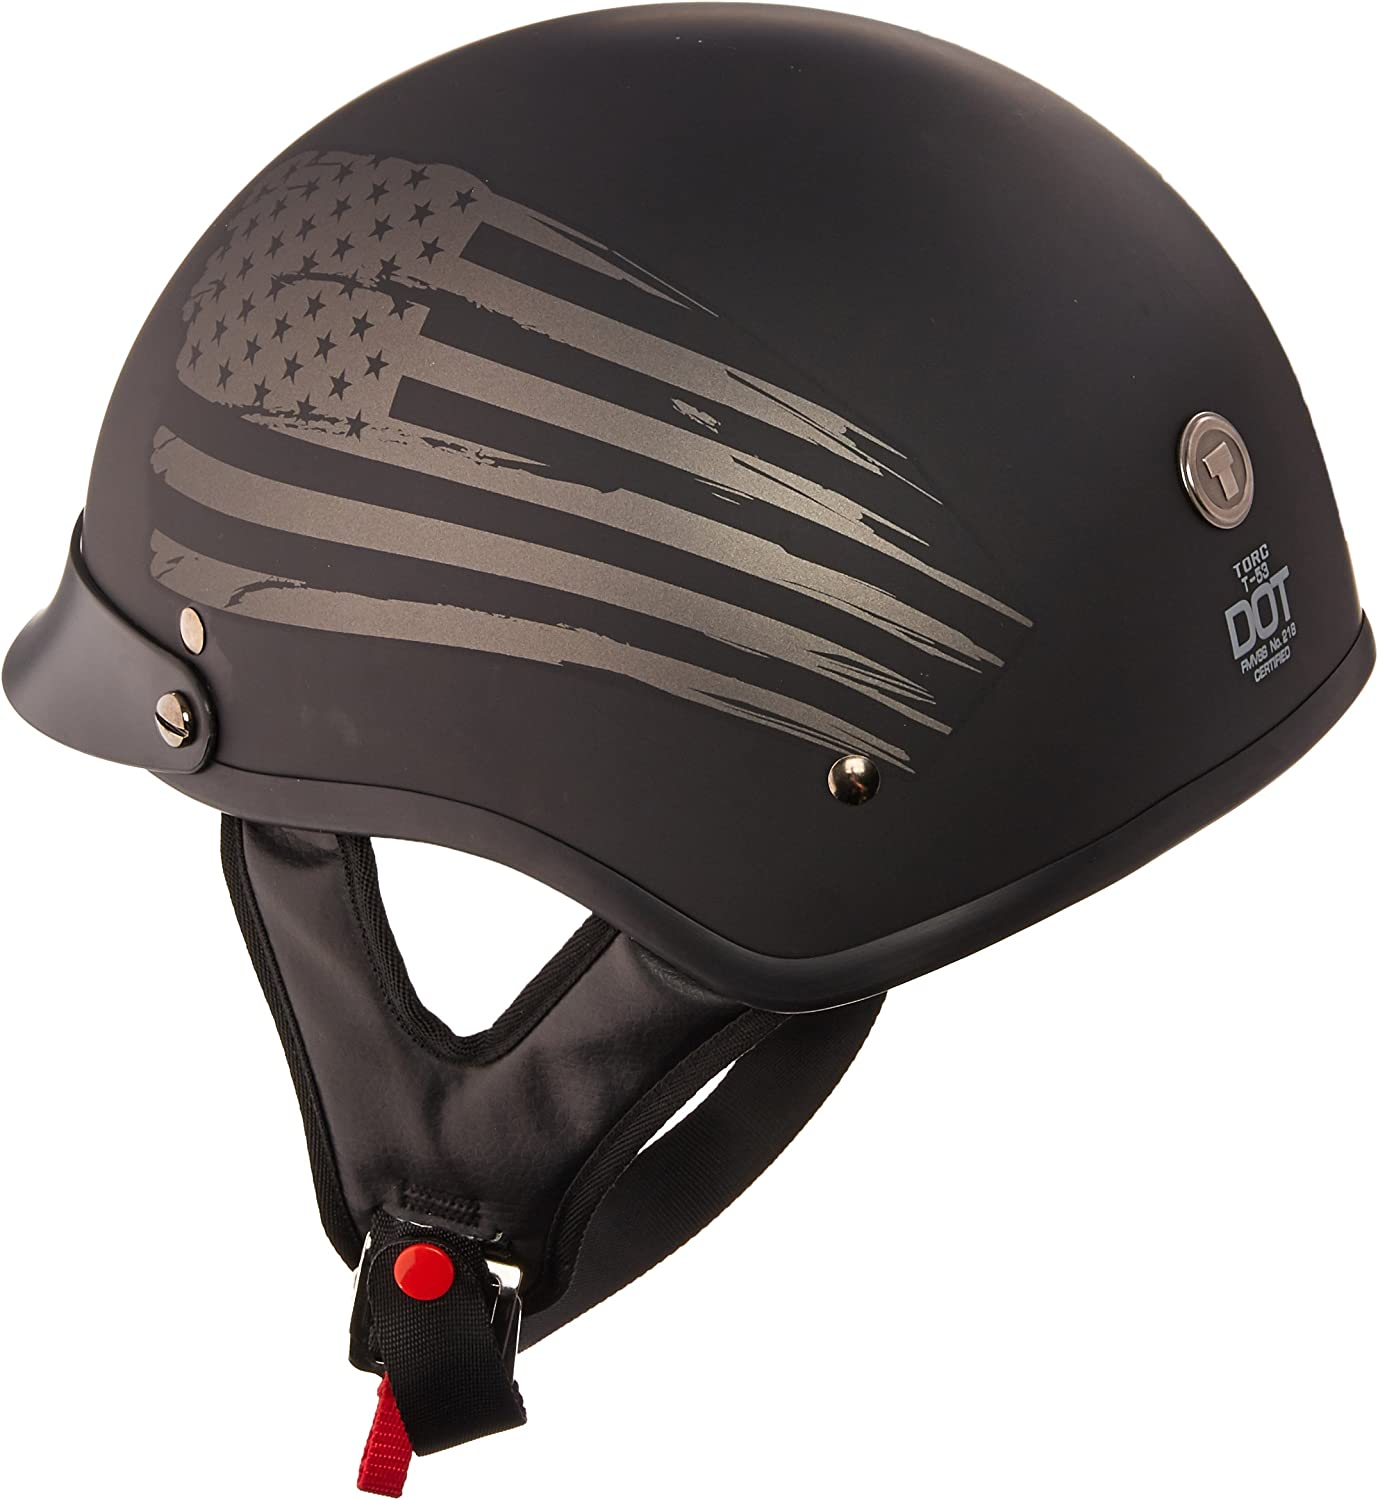 Flag X-Small TORC unisex-adult size style T53 Black Hills Motorcycle Half Helmet with Graphic